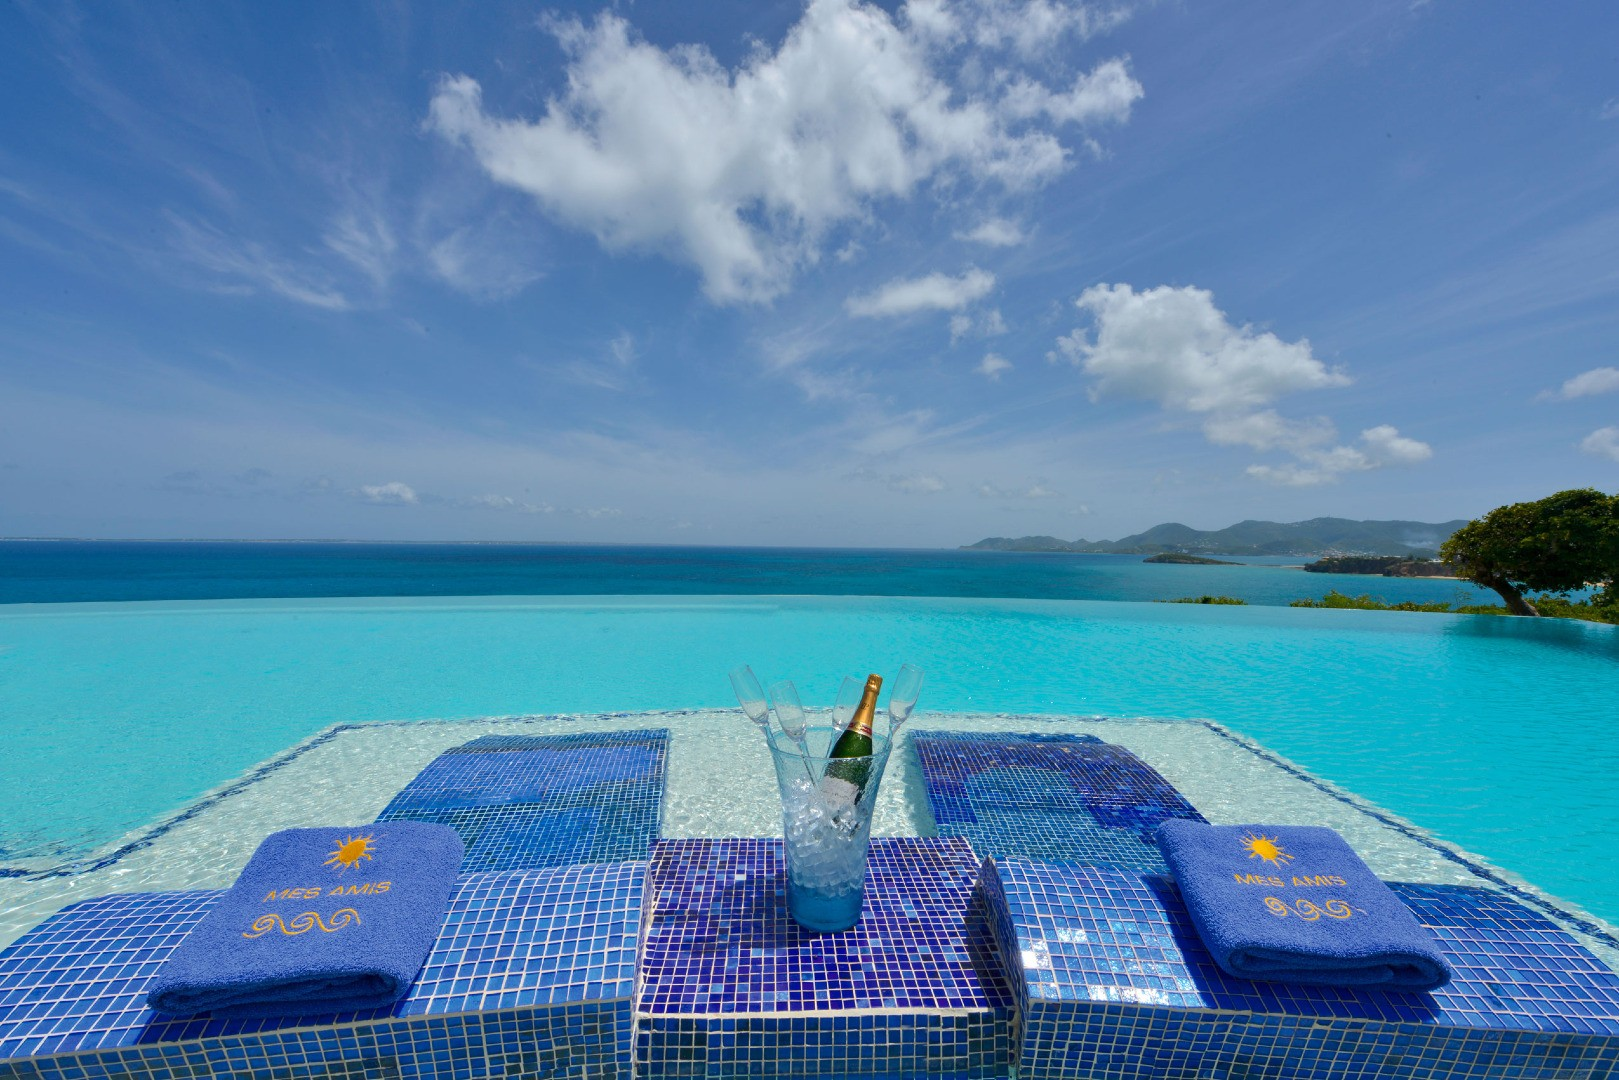 pool, outdoor, paradise, saint maarten, tropical